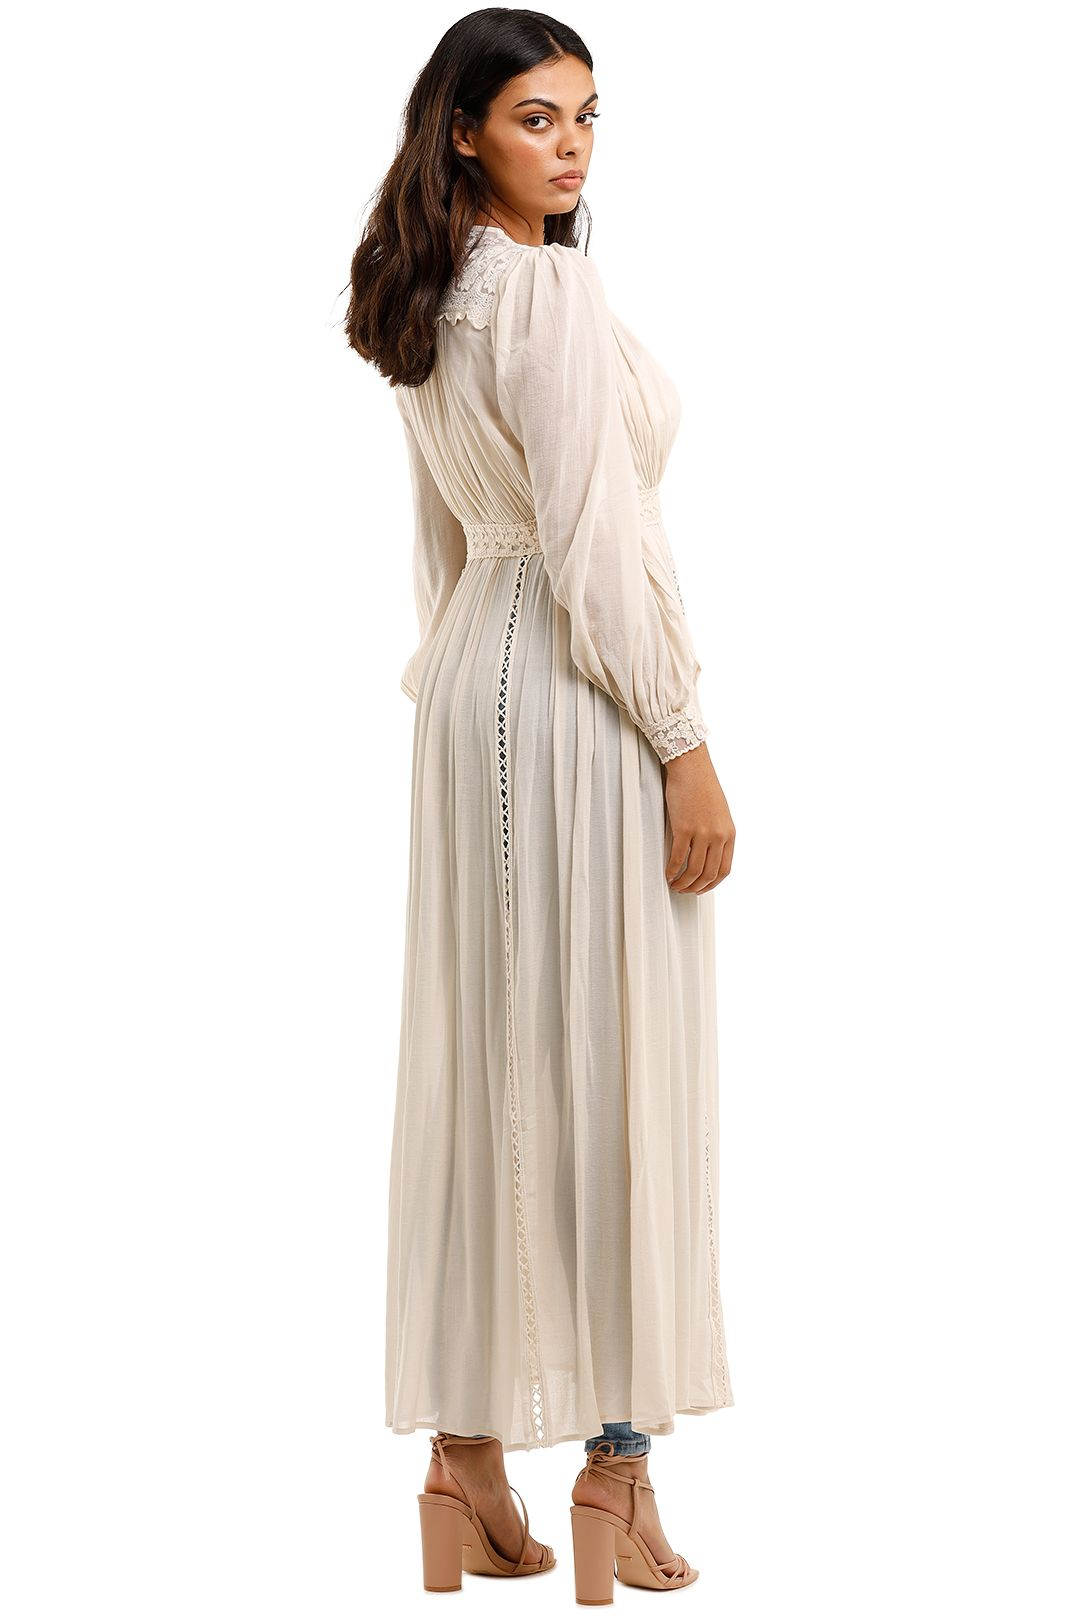 Spell Le Gauze Lace Duster Maxi Length